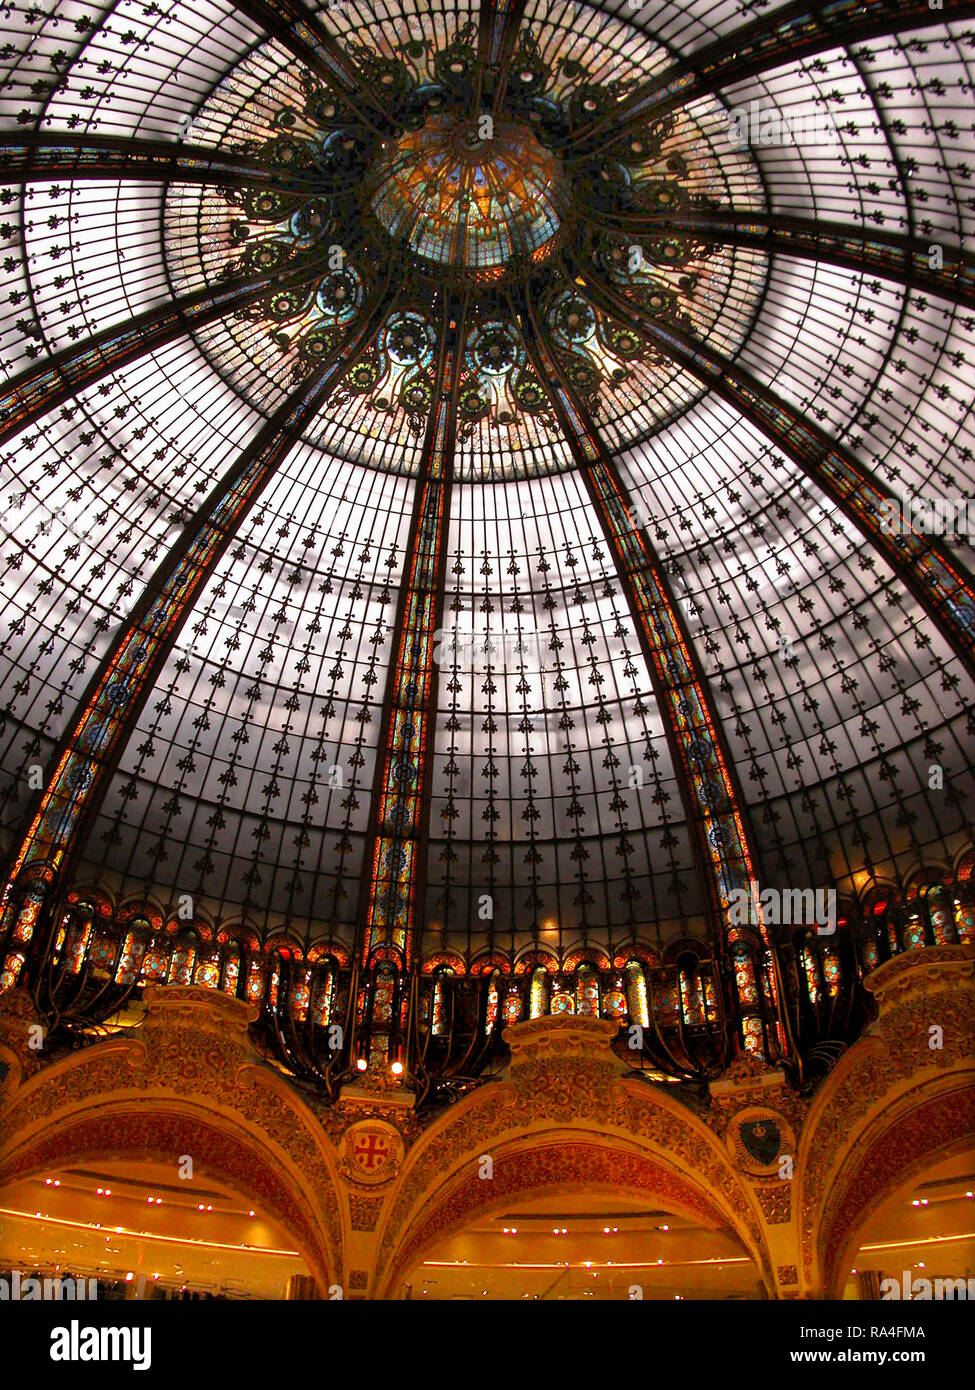 Galaries Lafayette and the stunning stained glass cuplola, 40 Boulevard Haussmann, Paris, France Stock Photo